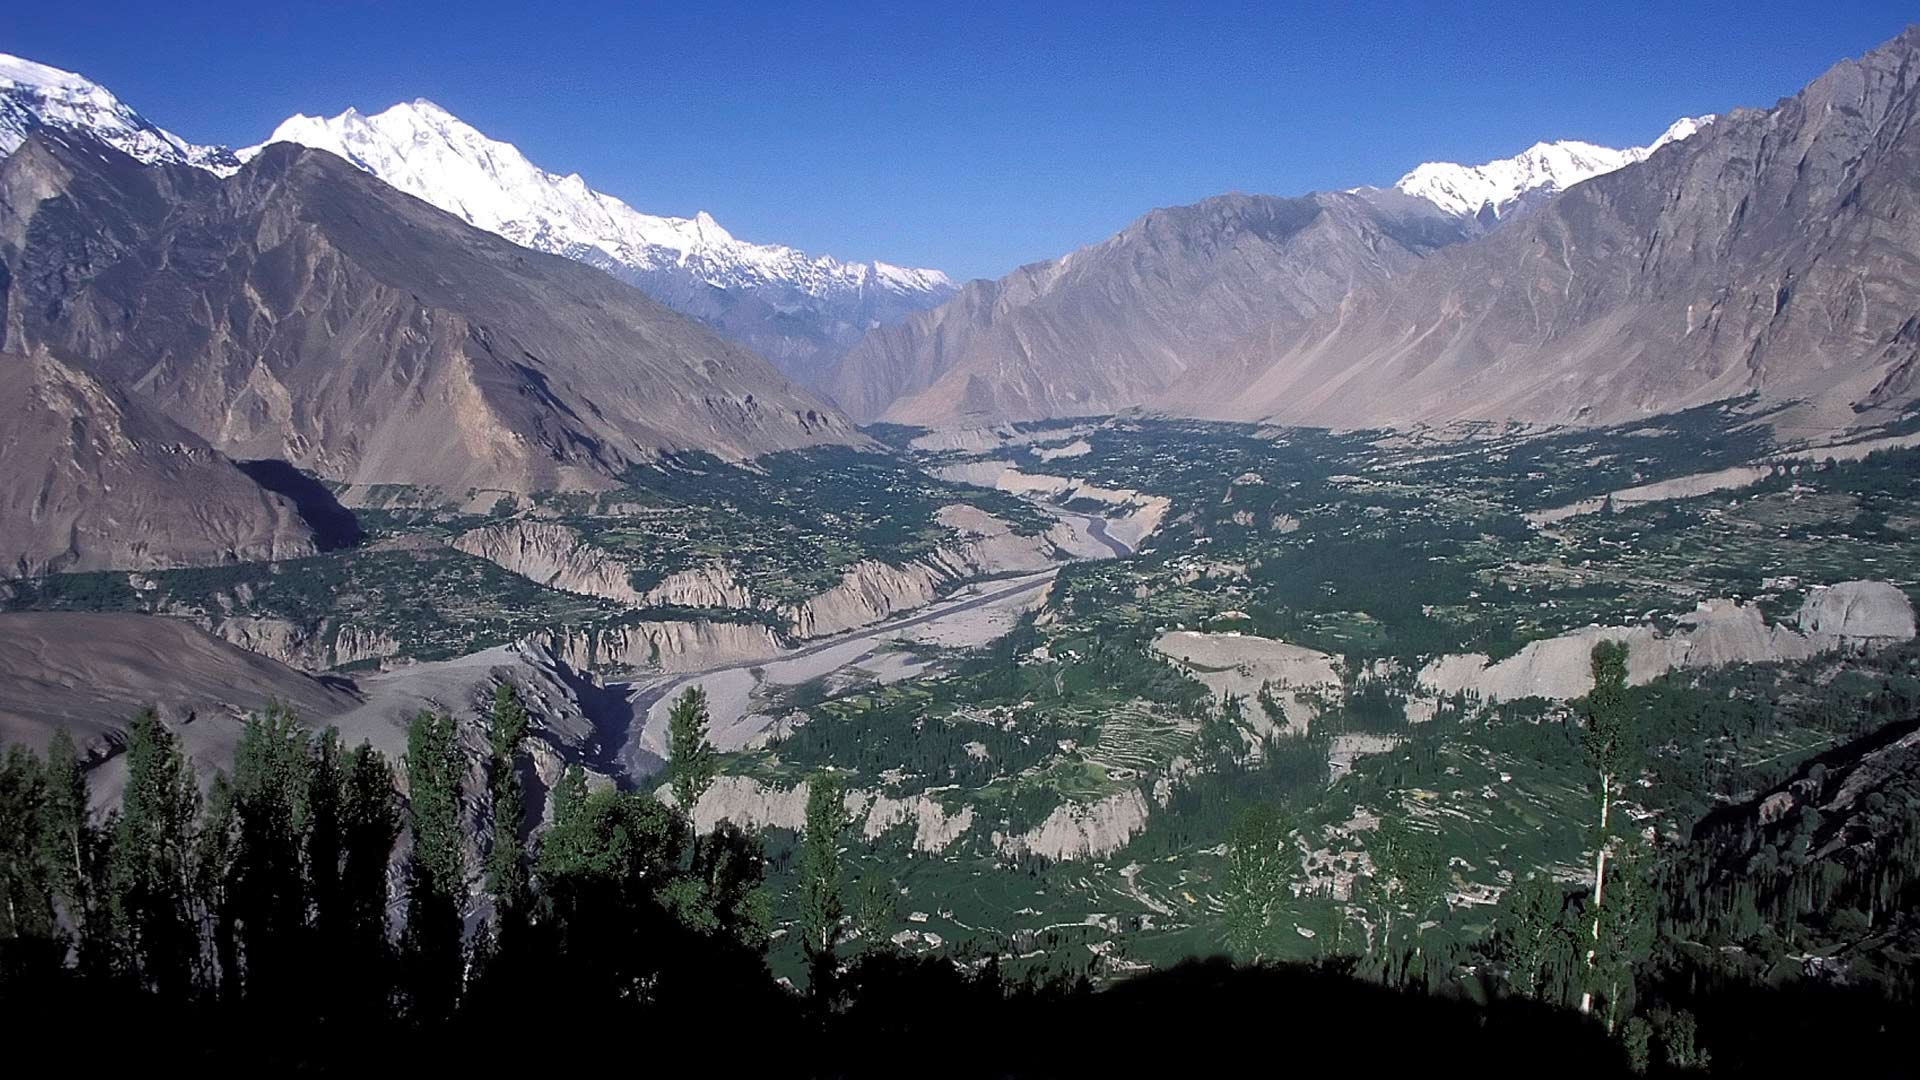 Hunza Valley and the peaks of the Karakoram, as seen from Duikar, Northern Areas, Pakistan